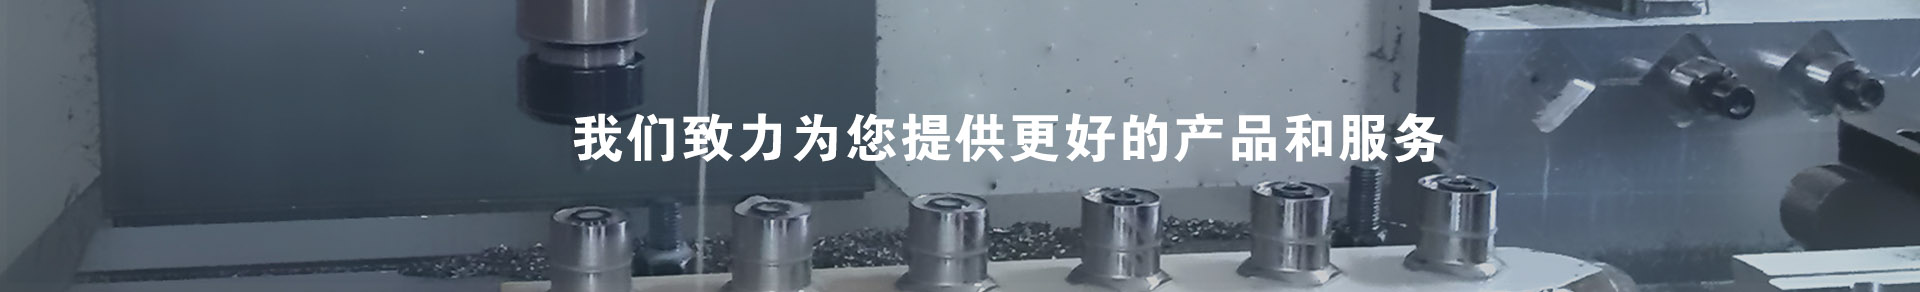 /data/upload/202006/20200609161750_224.jpg